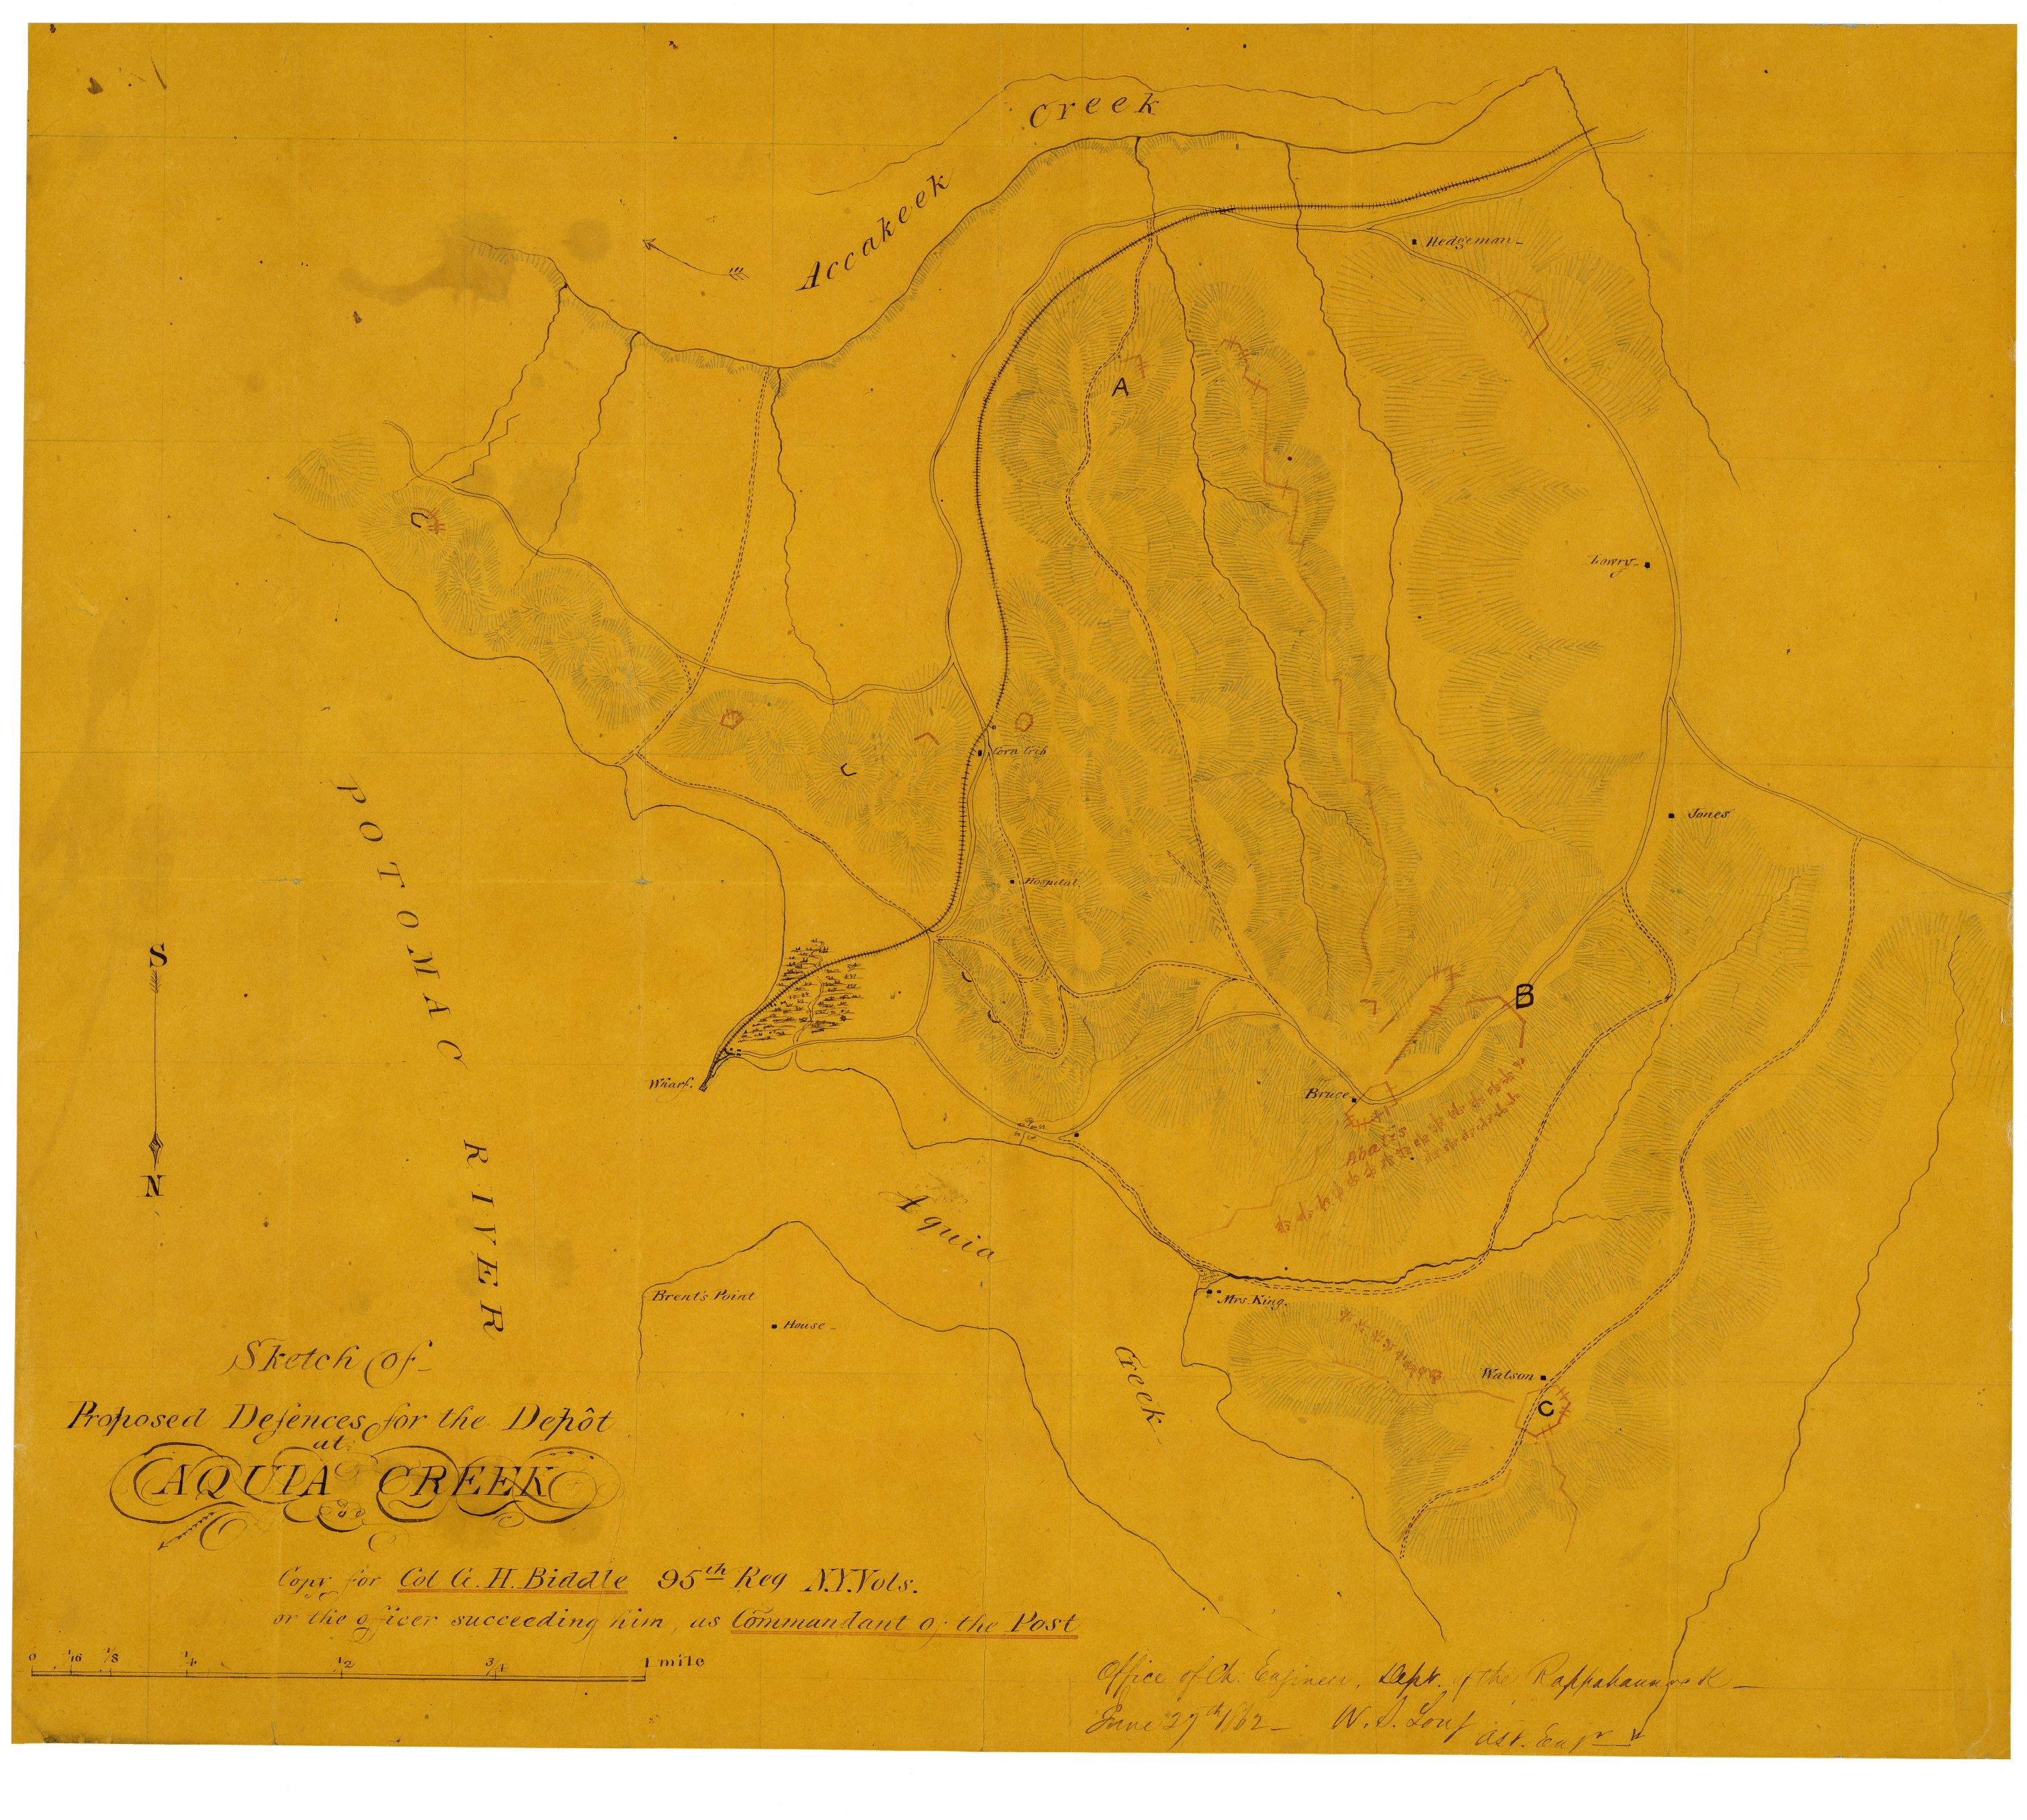 acquia creek landing and canterbury proposed union defenses and rebel artillery emplacements June 1862